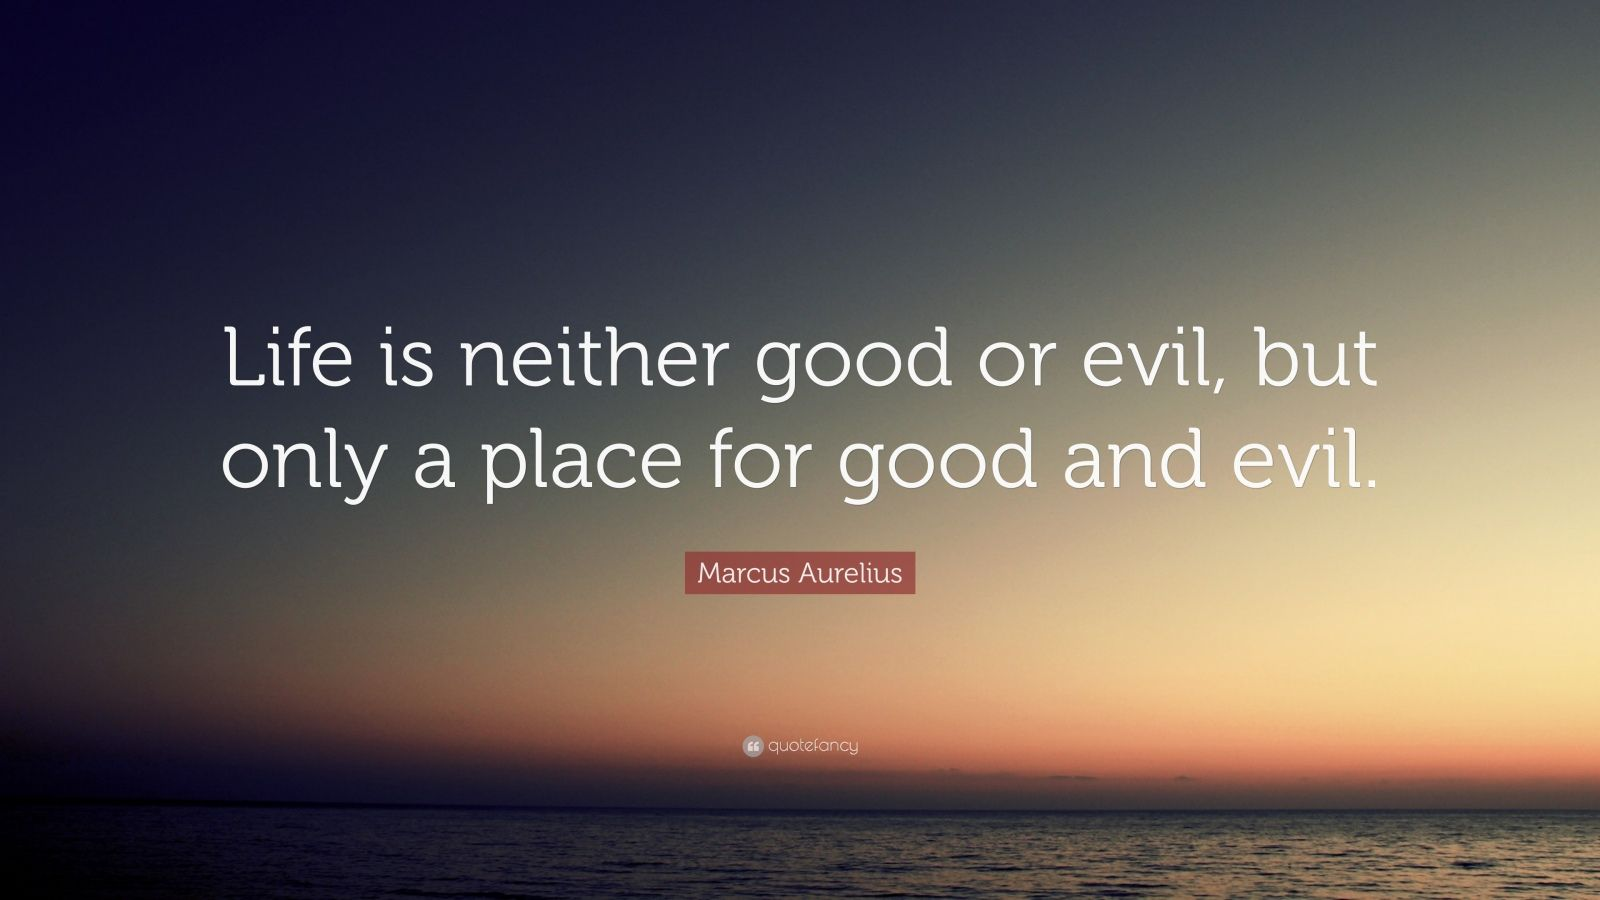 Dalai Lama Quotes Wallpapers Marcus Aurelius Quote Life Is Neither Good Or Evil But